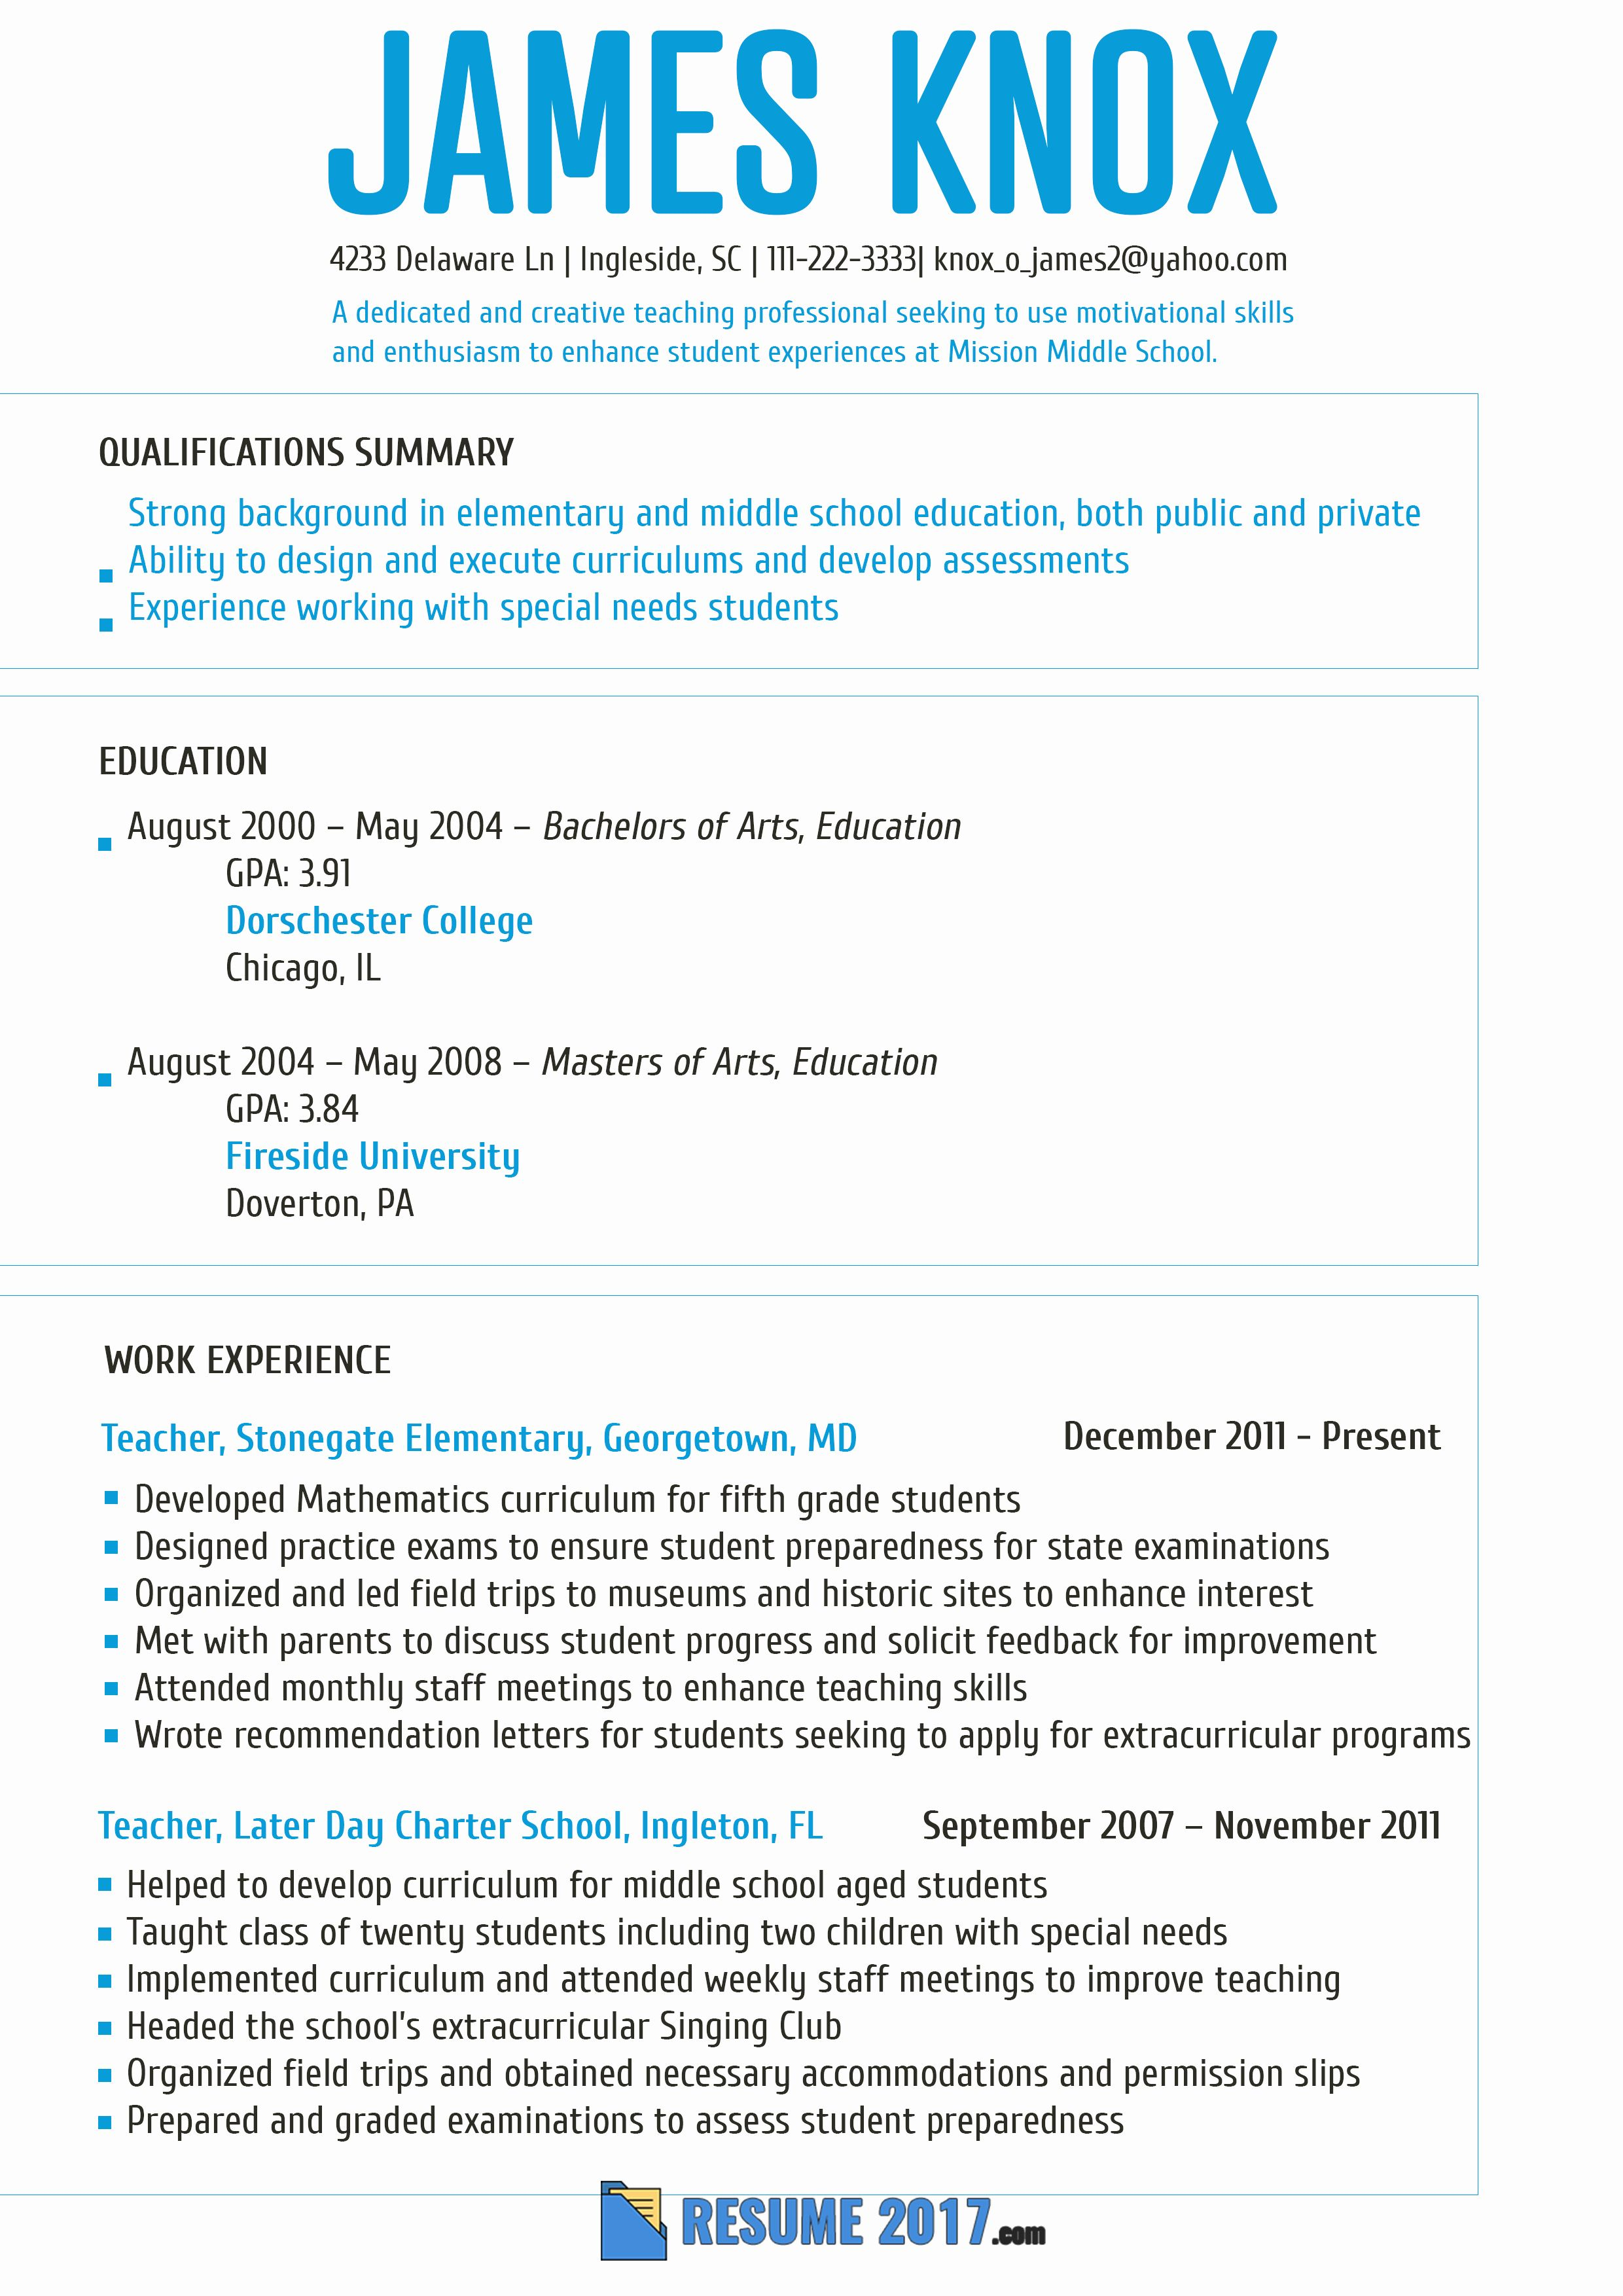 Best Resume Format 2018 With Genuine Reasons To Follow Resume Format Online Resume Template Best Resume Format